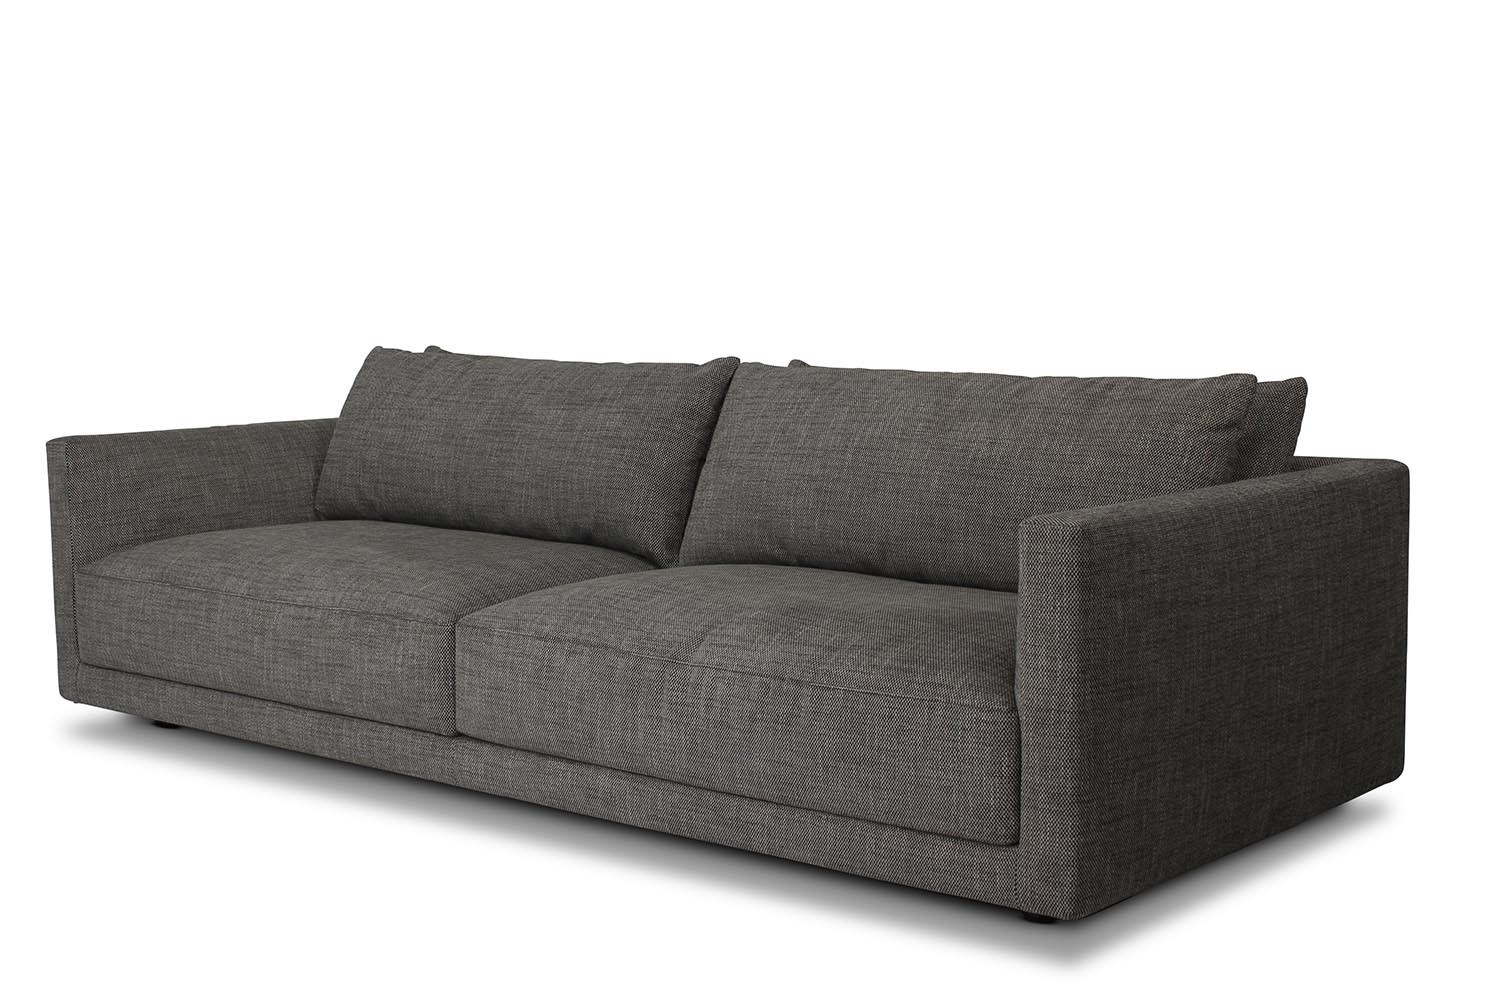 Bristol Sofa Cm 254 Poliform Design Jean Marie Massaud Inside Bristol Sofas (Image 4 of 15)